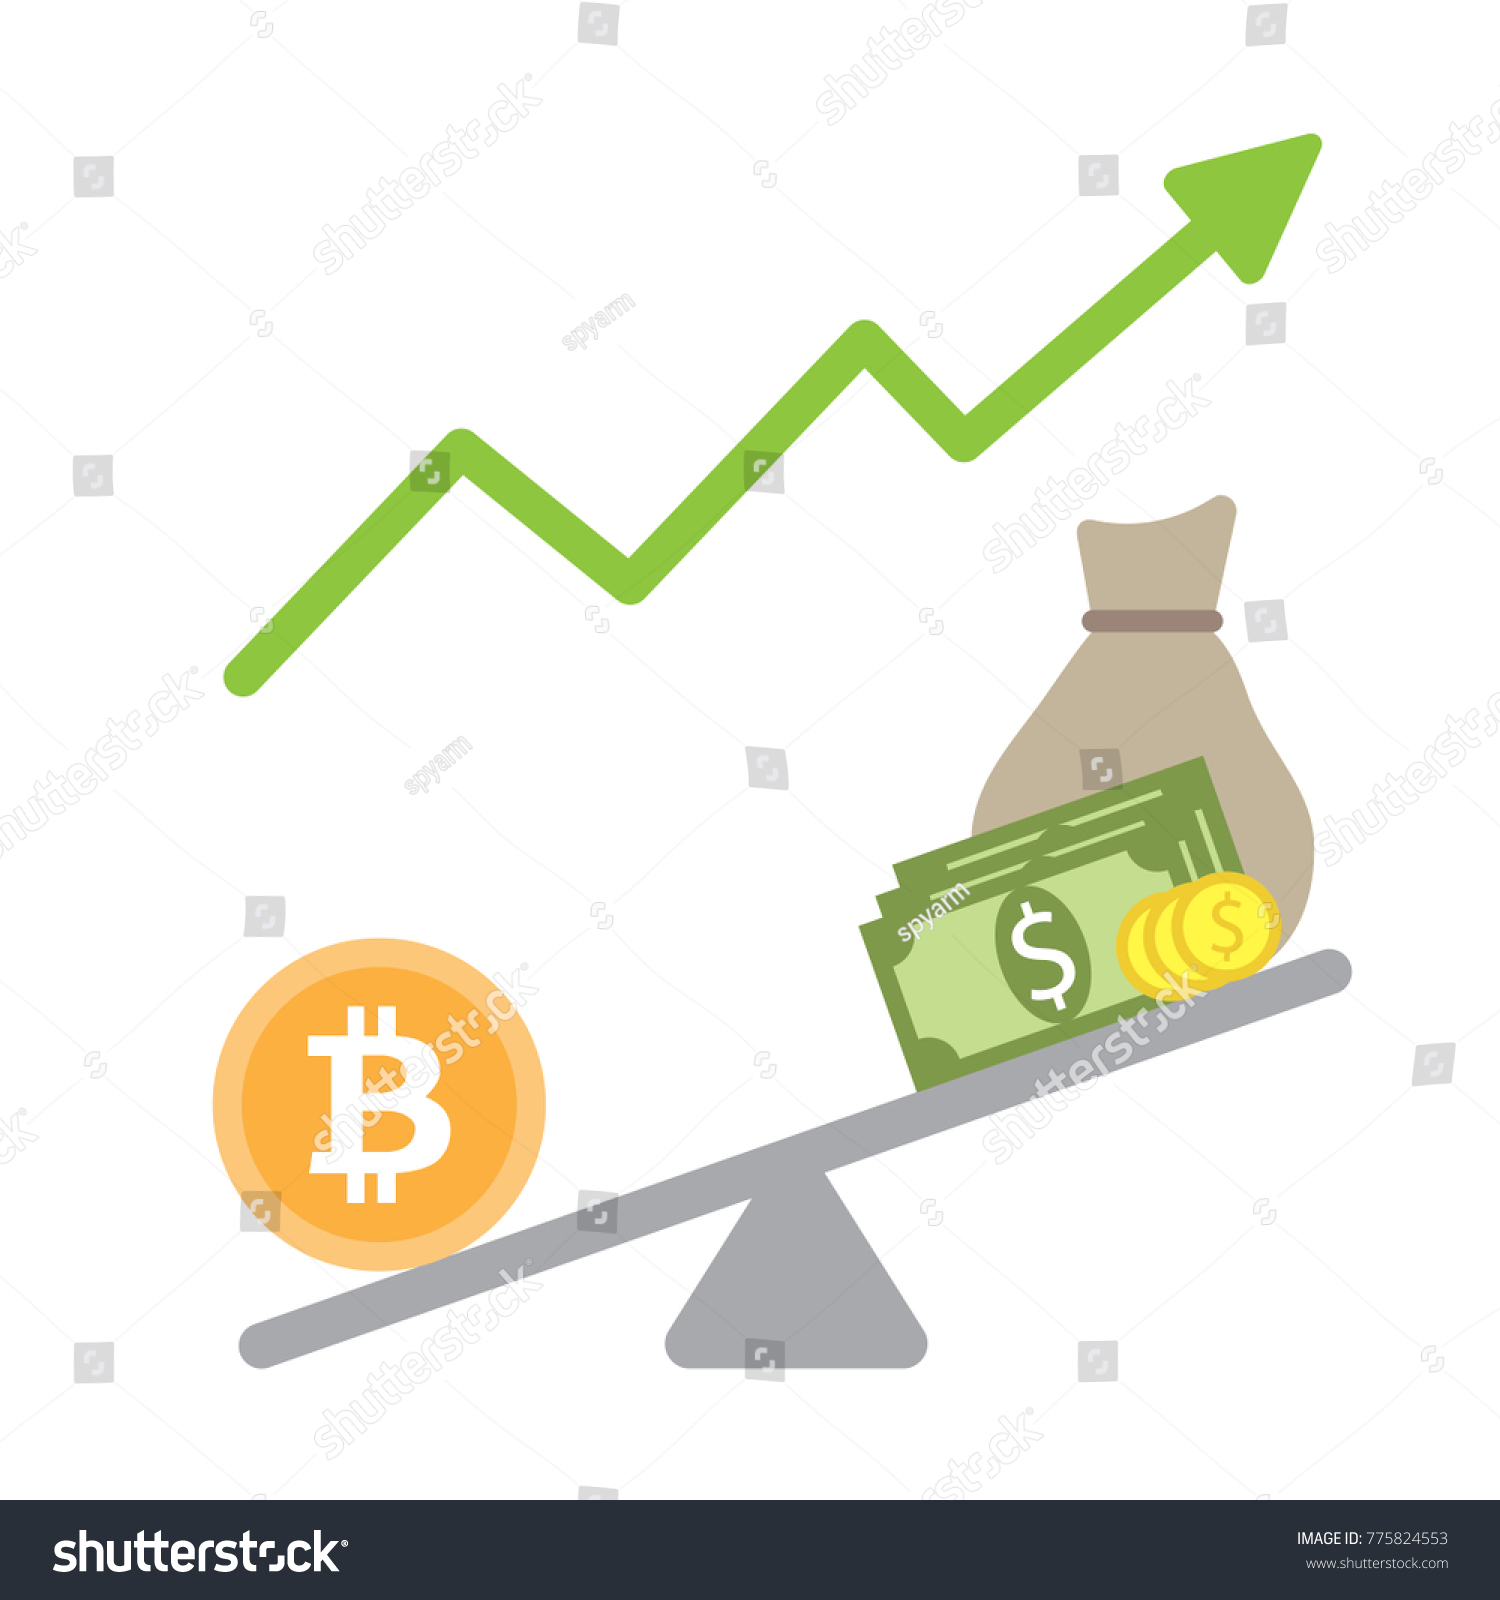 Bitcoin Value Balance Scale Vector Cryptocurrency Compare With Dollar And High Growth Simple Flat